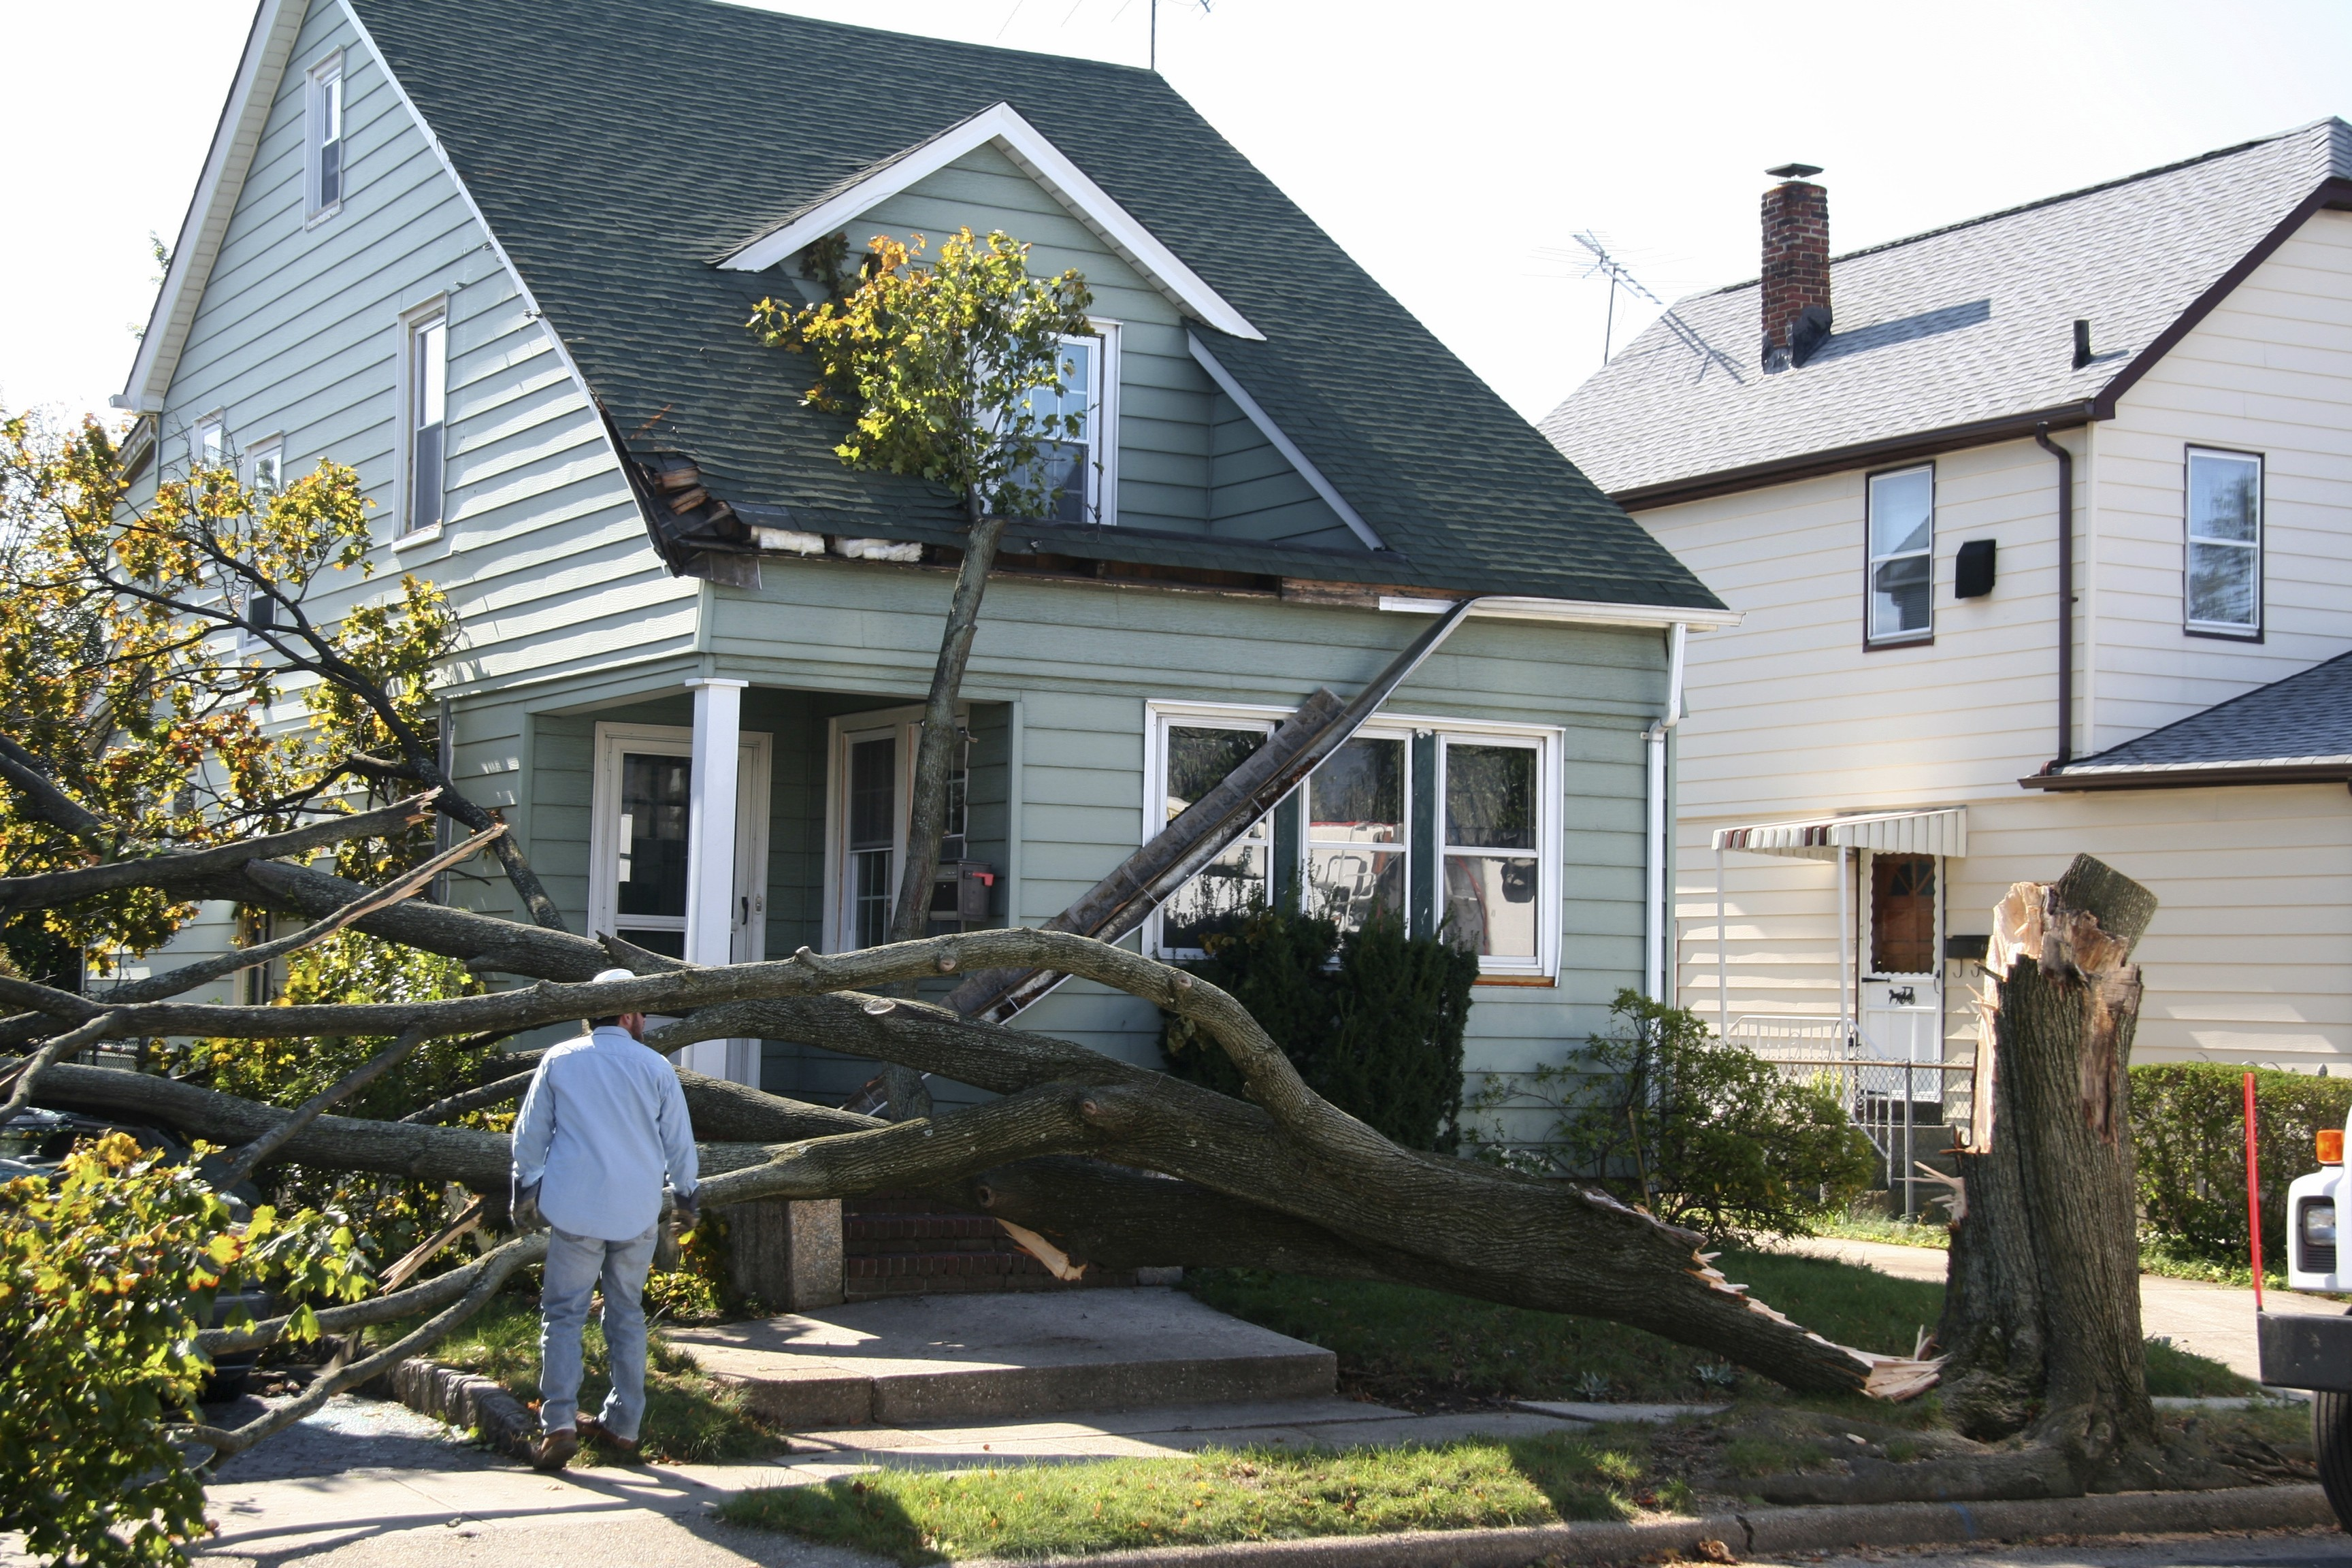 Here's What to Do After a Storm: A Restoration Plan